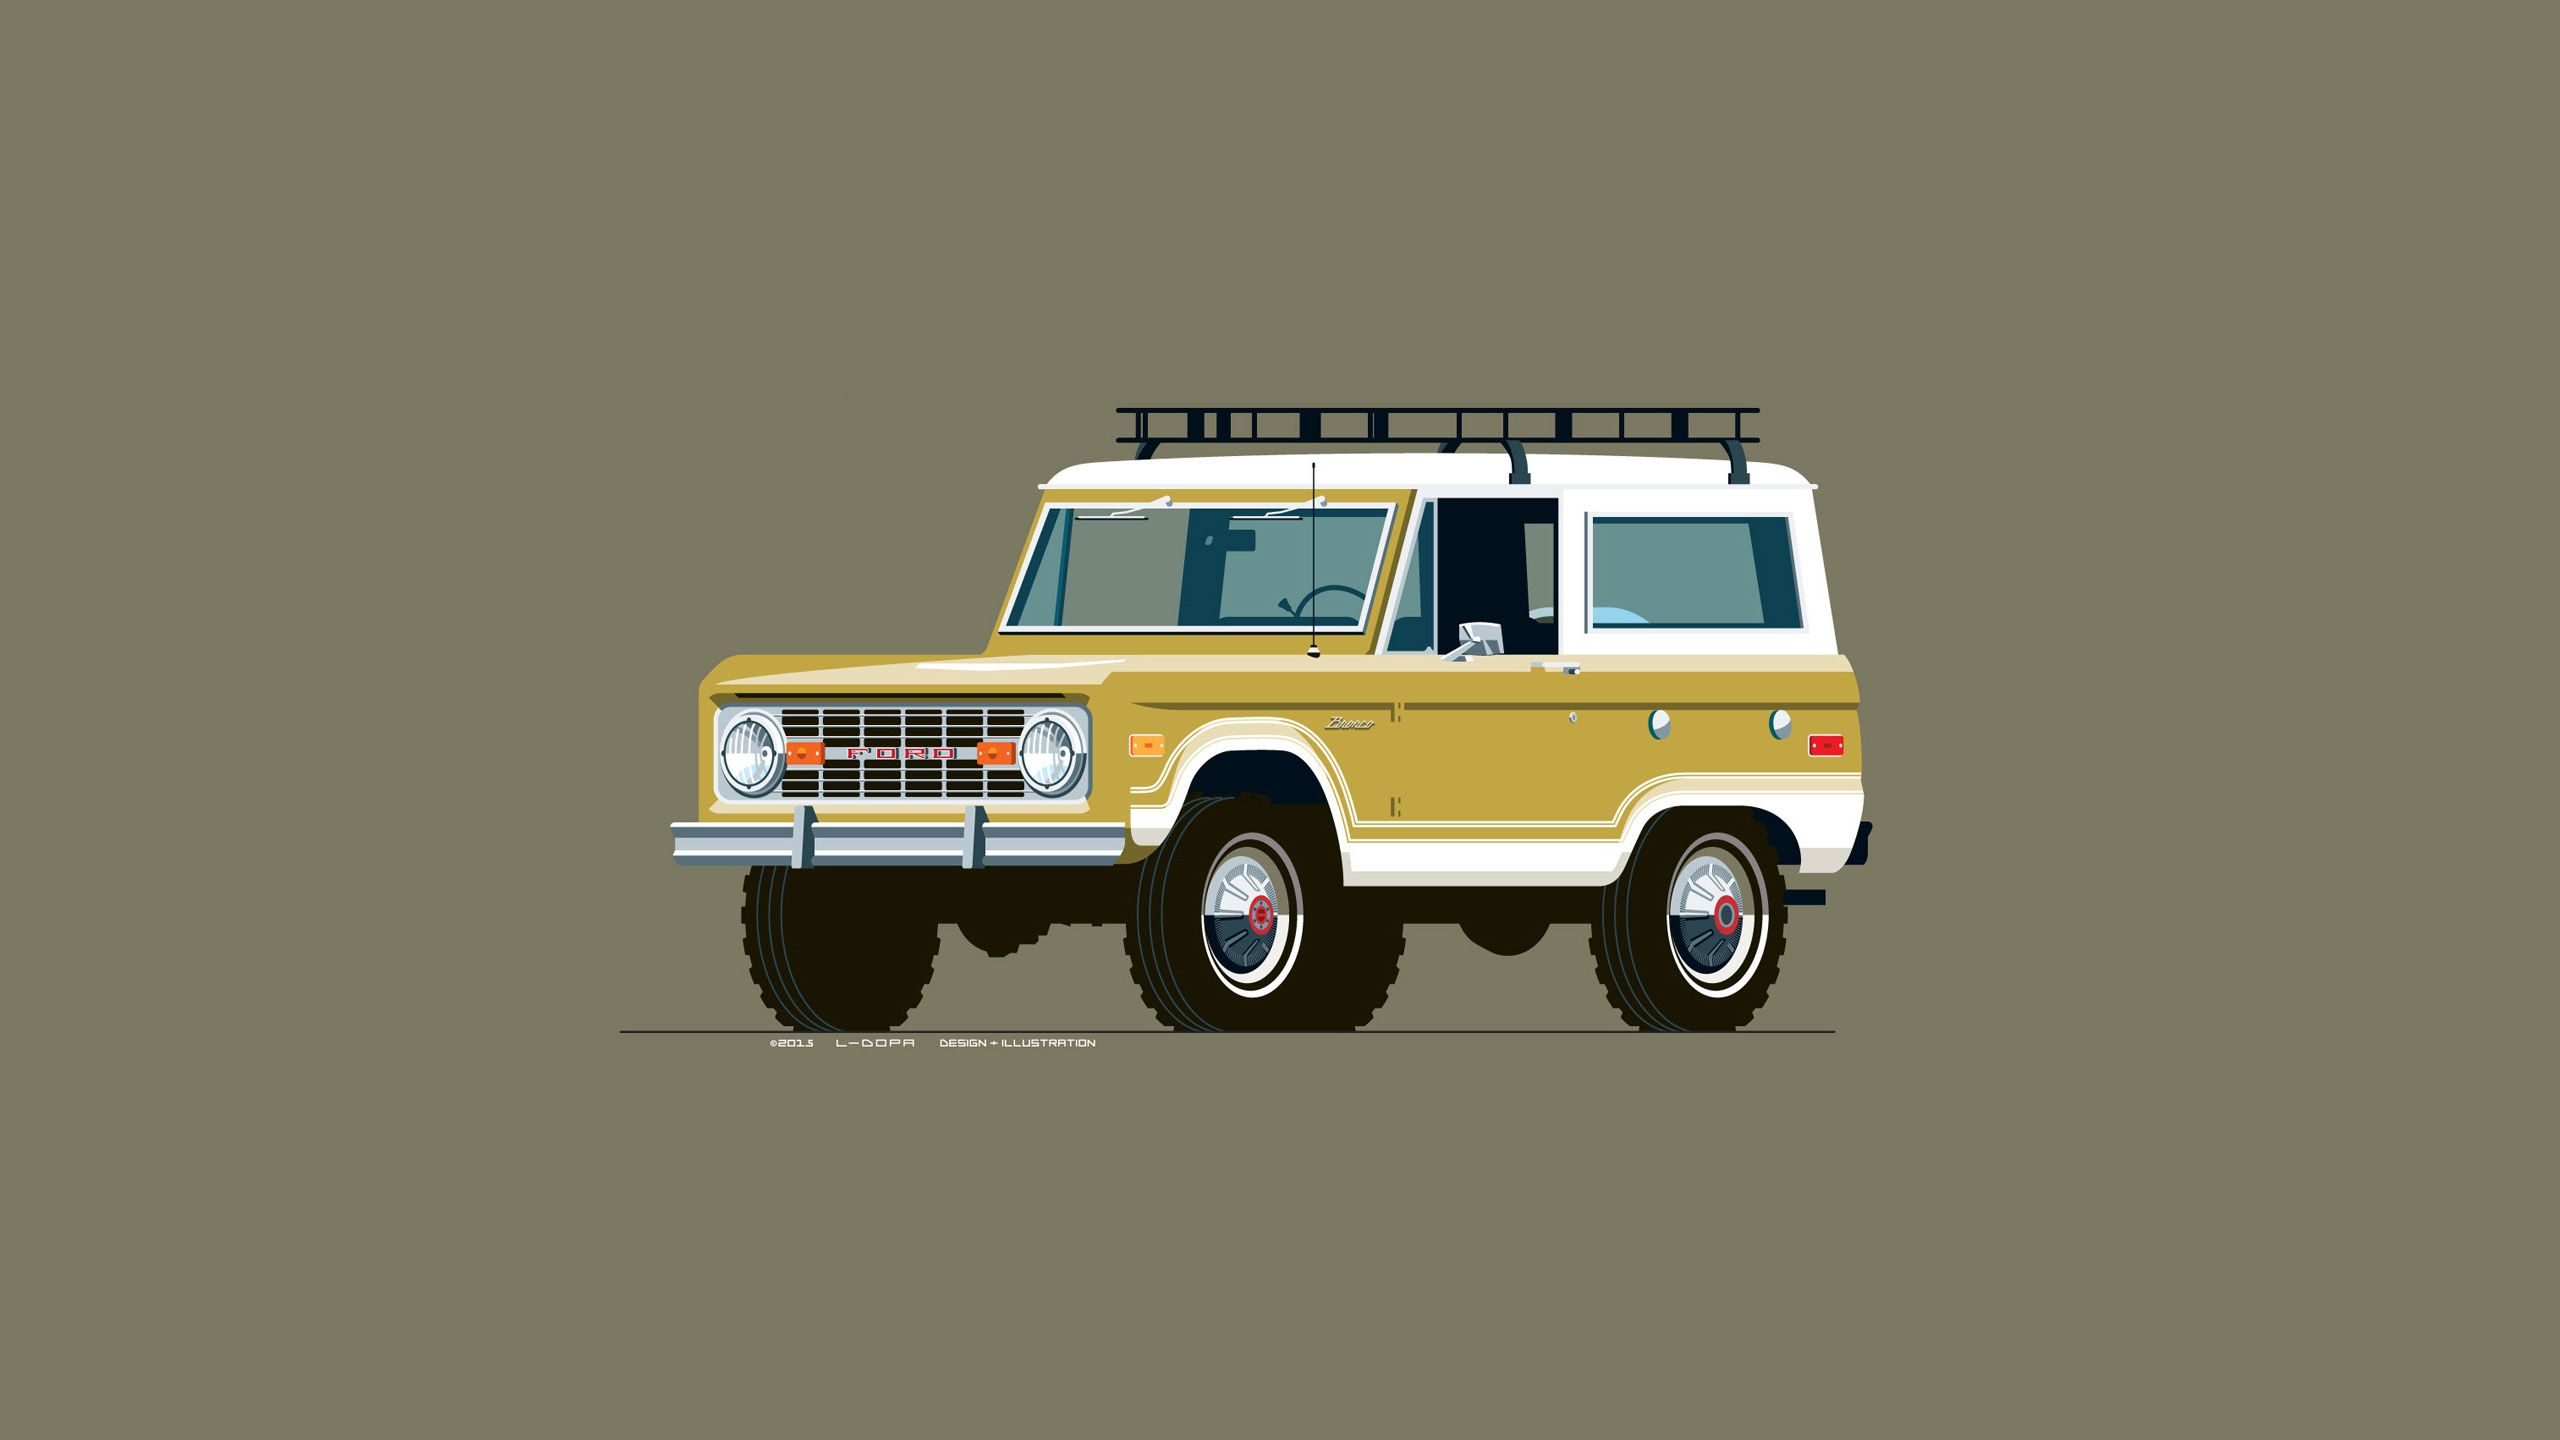 Ford Bronco Wallpapers 24 - 2560 X 1440 | stmed.net